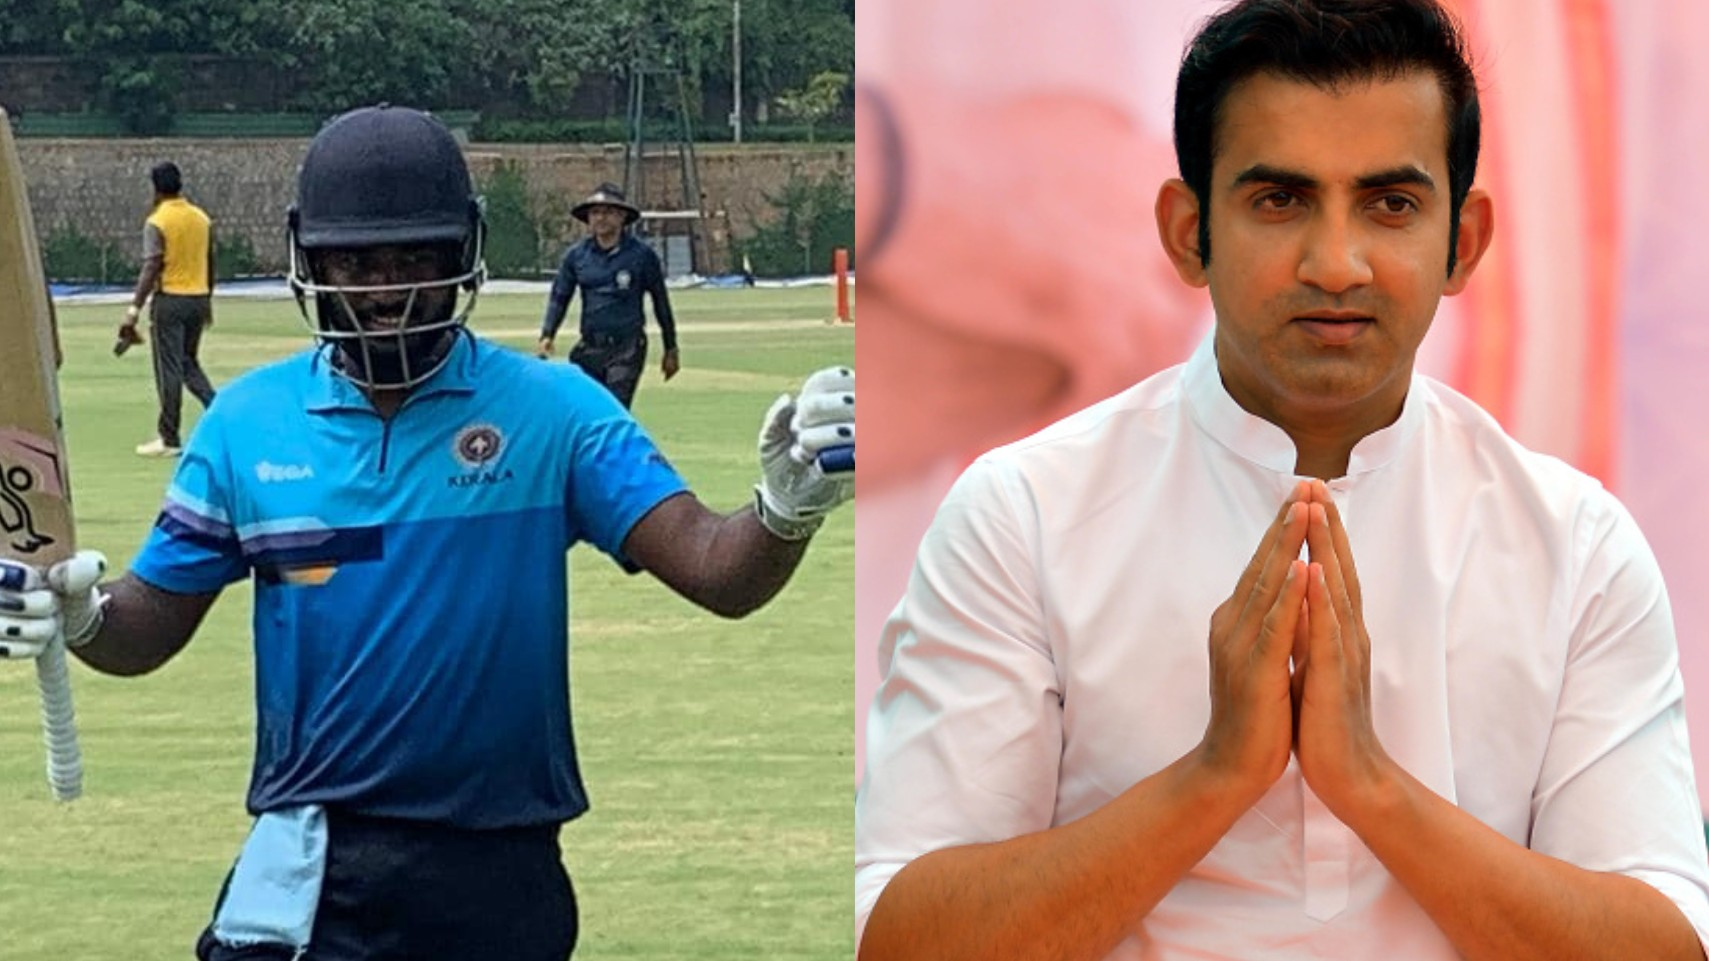 Gautam Gambhir lauds Kerala's Sanju Samson on his record 212* against Goa